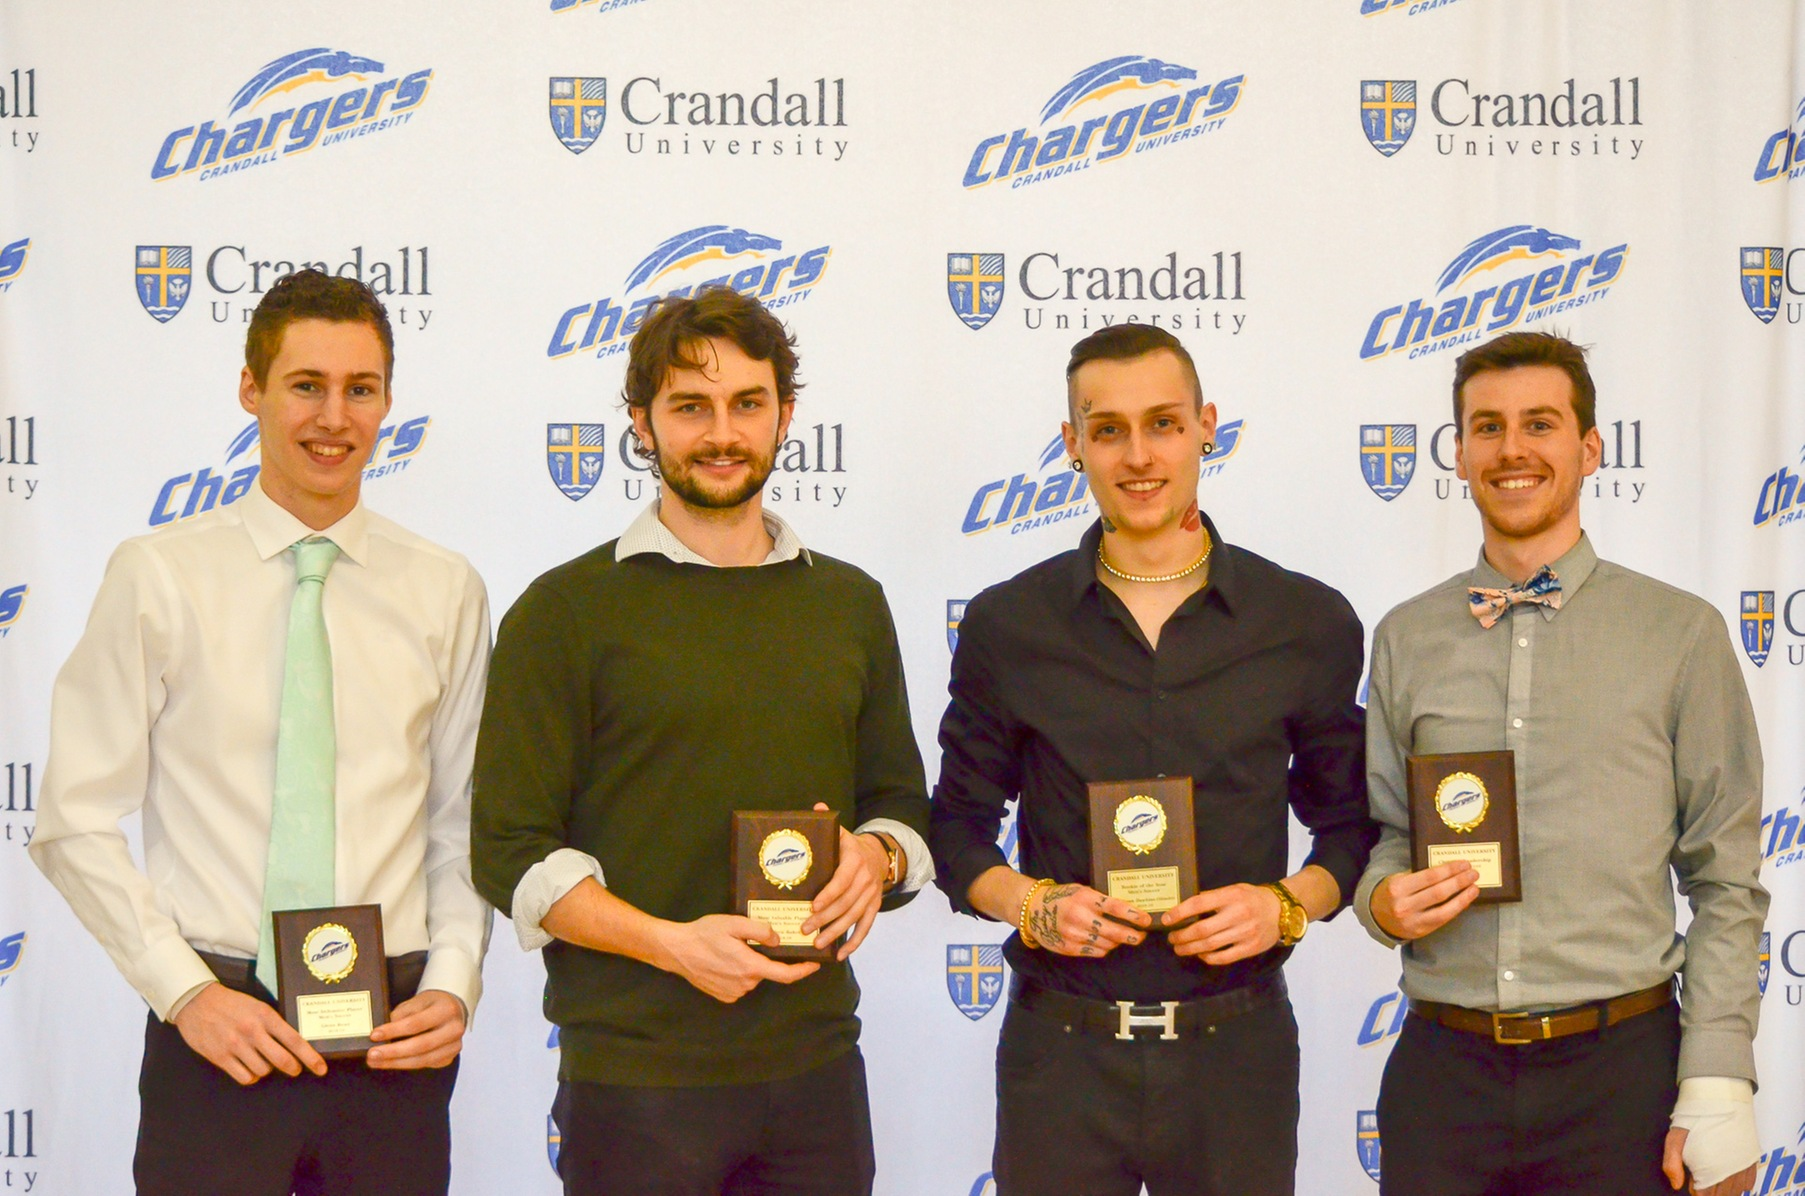 Men's soccer award winners